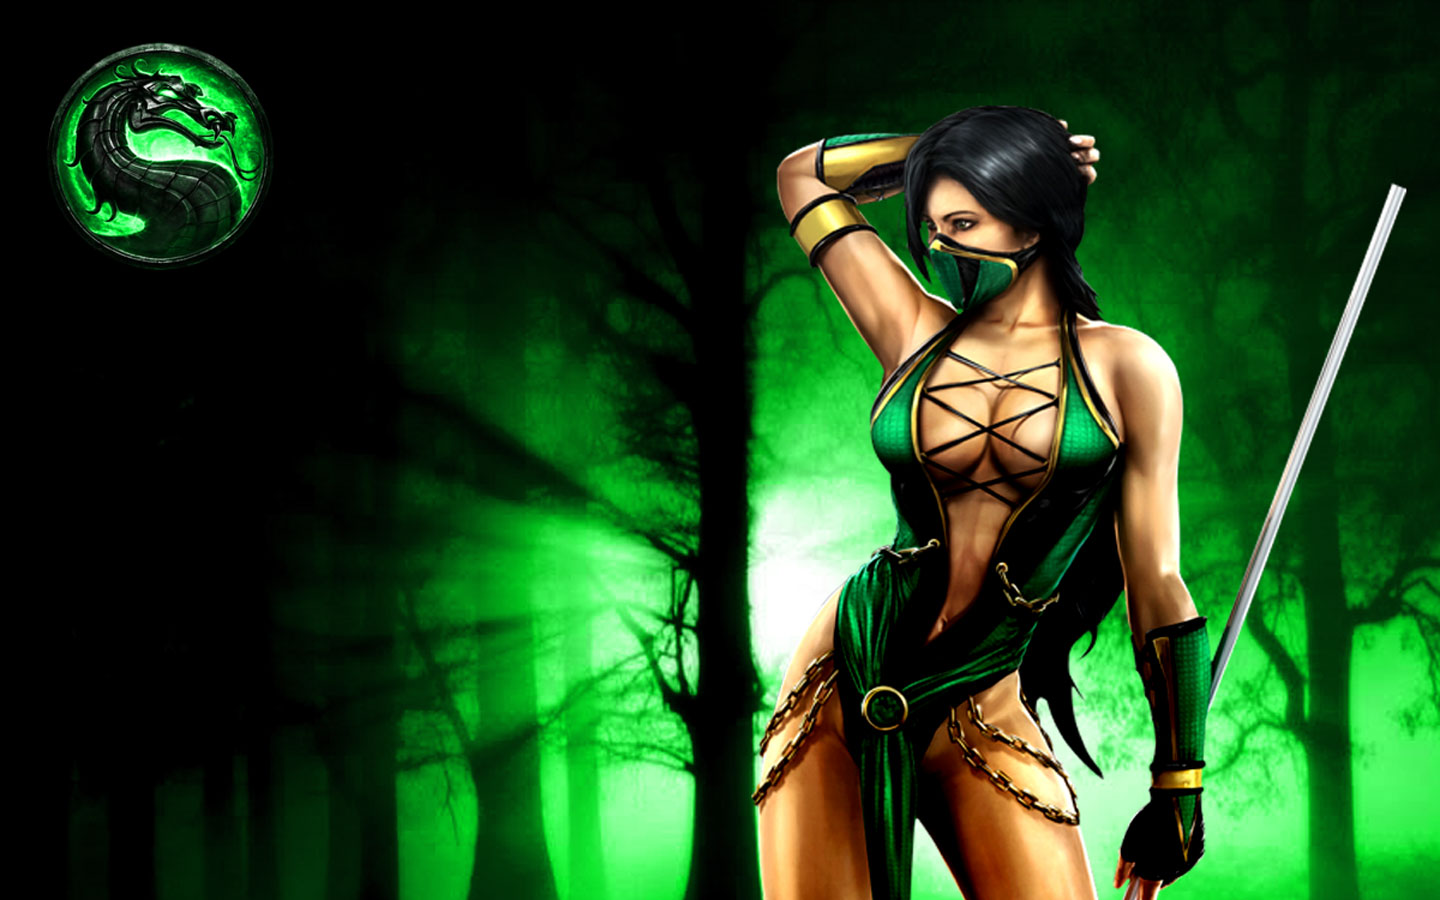 Mortal kombat HD & Widescreen Wallpaper 0.825967391250427